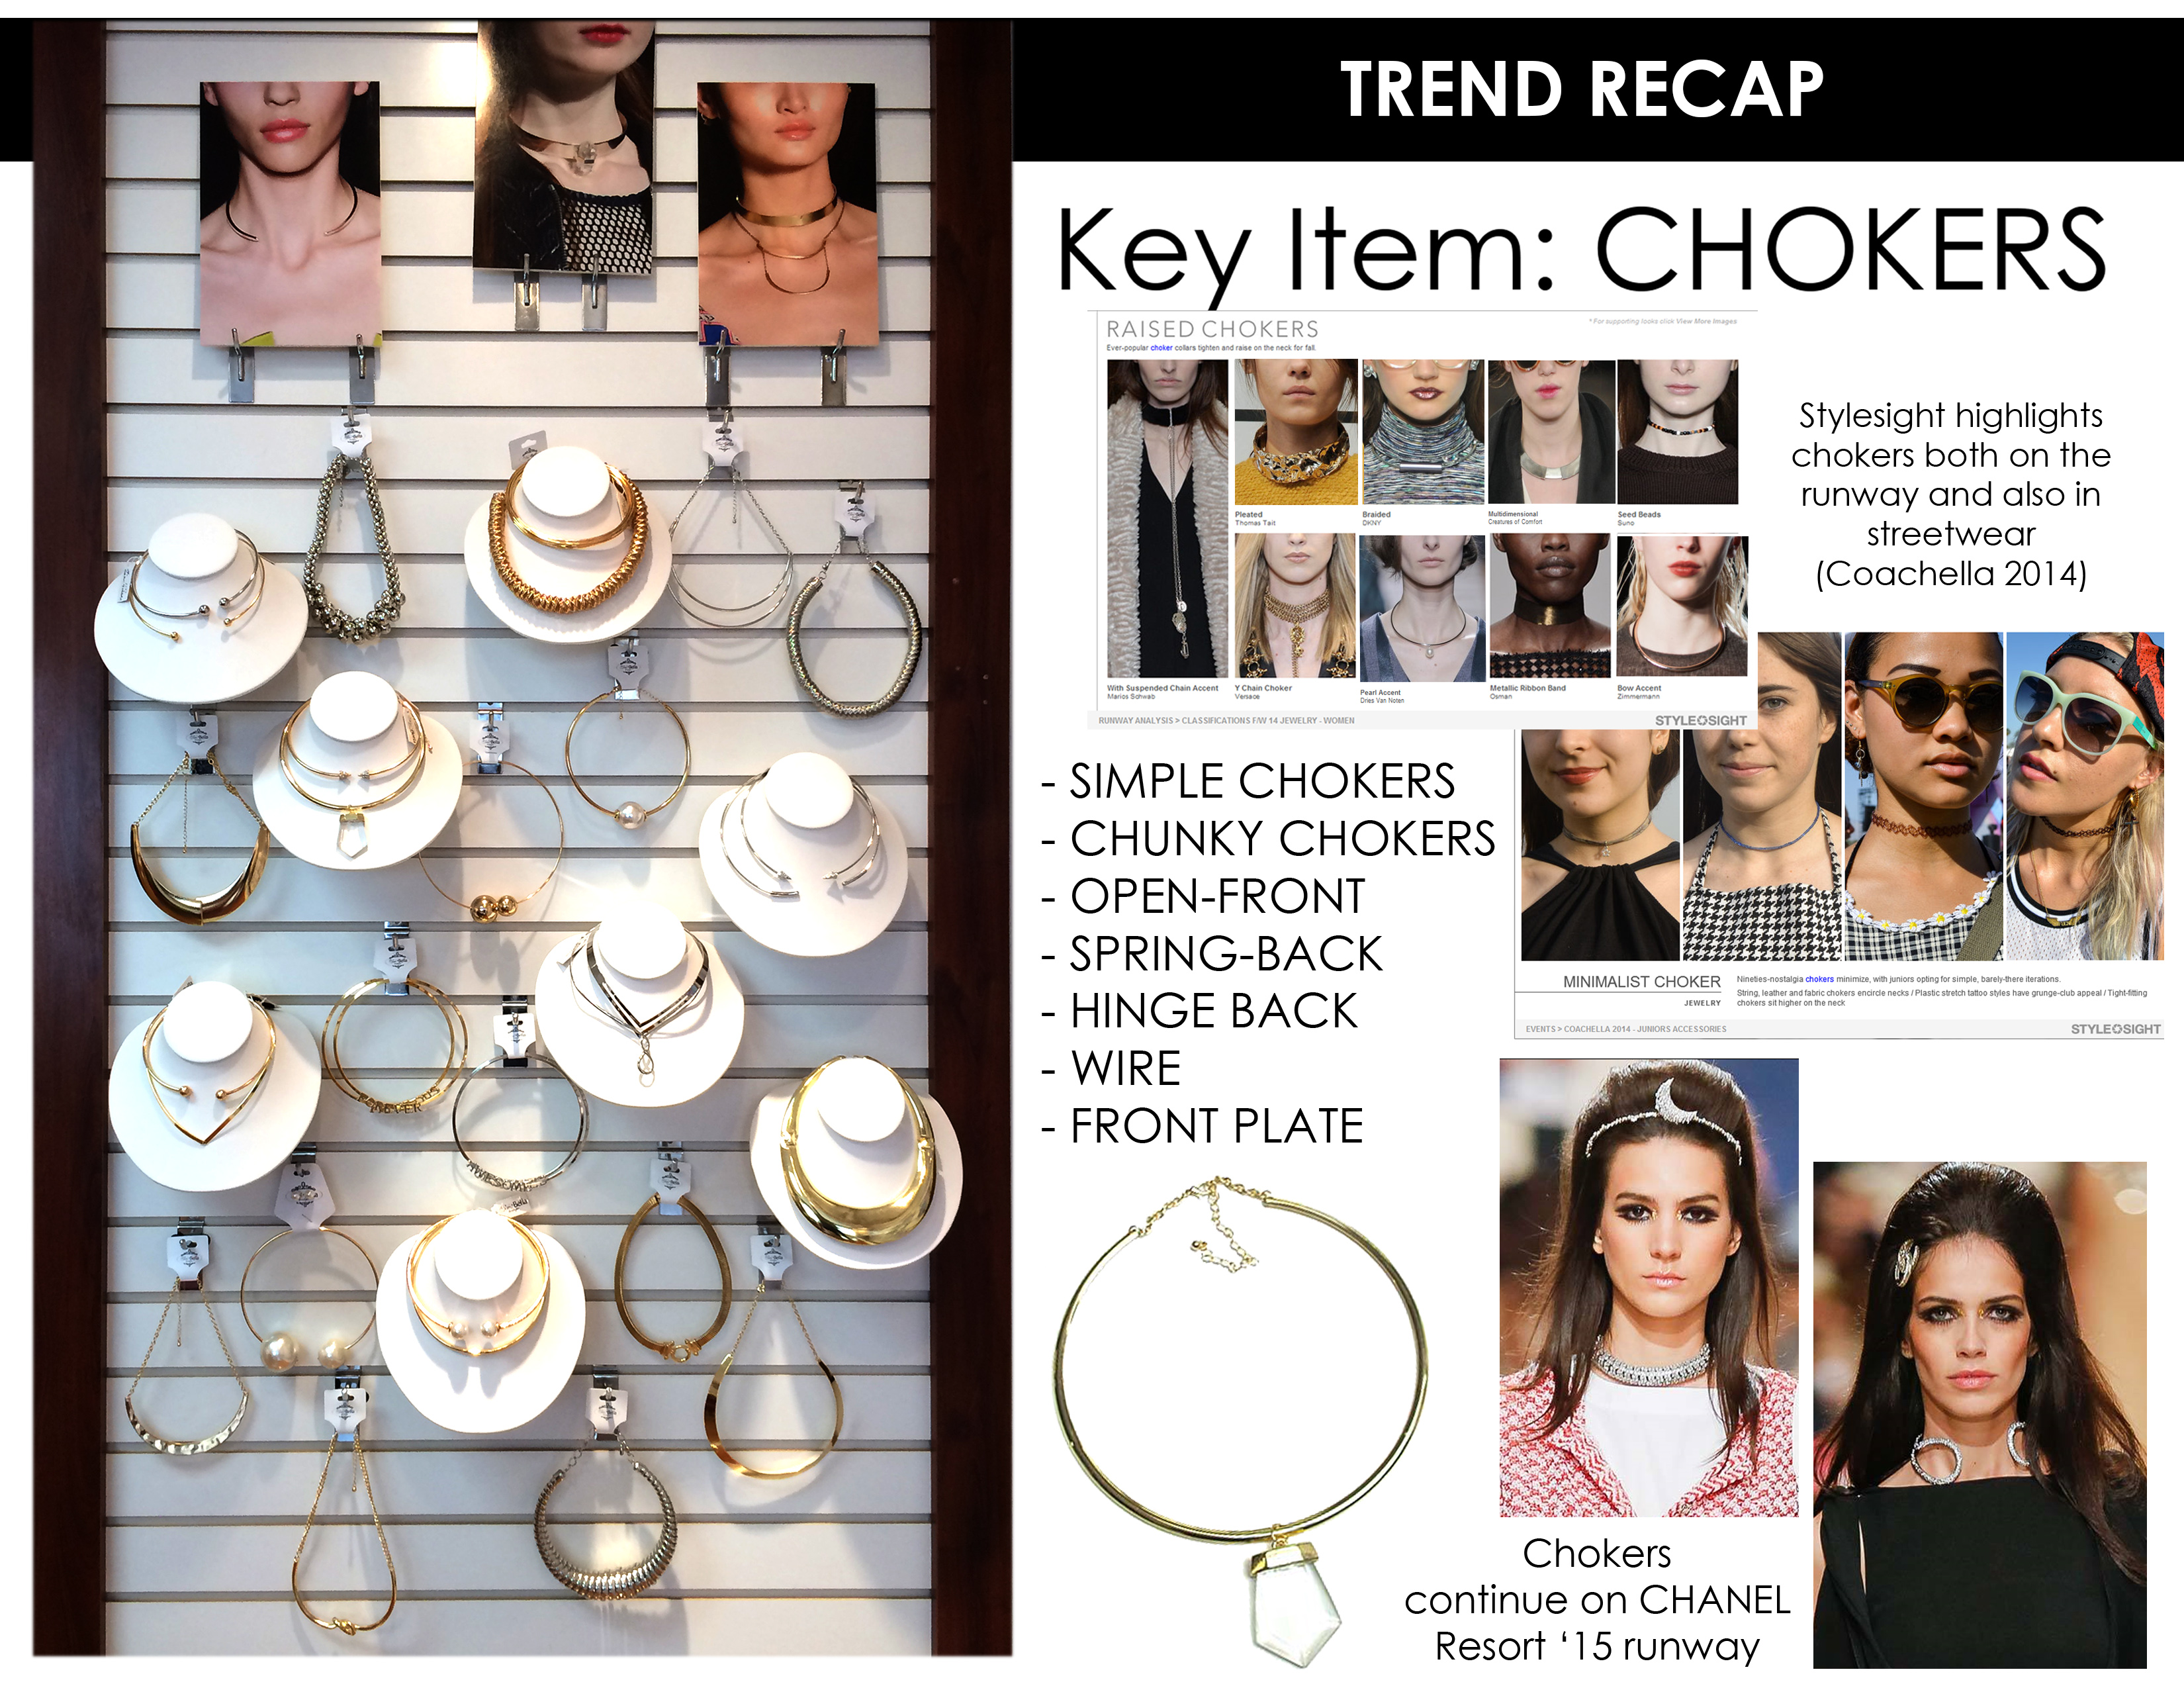 Showroom Trend Recap for Chokers